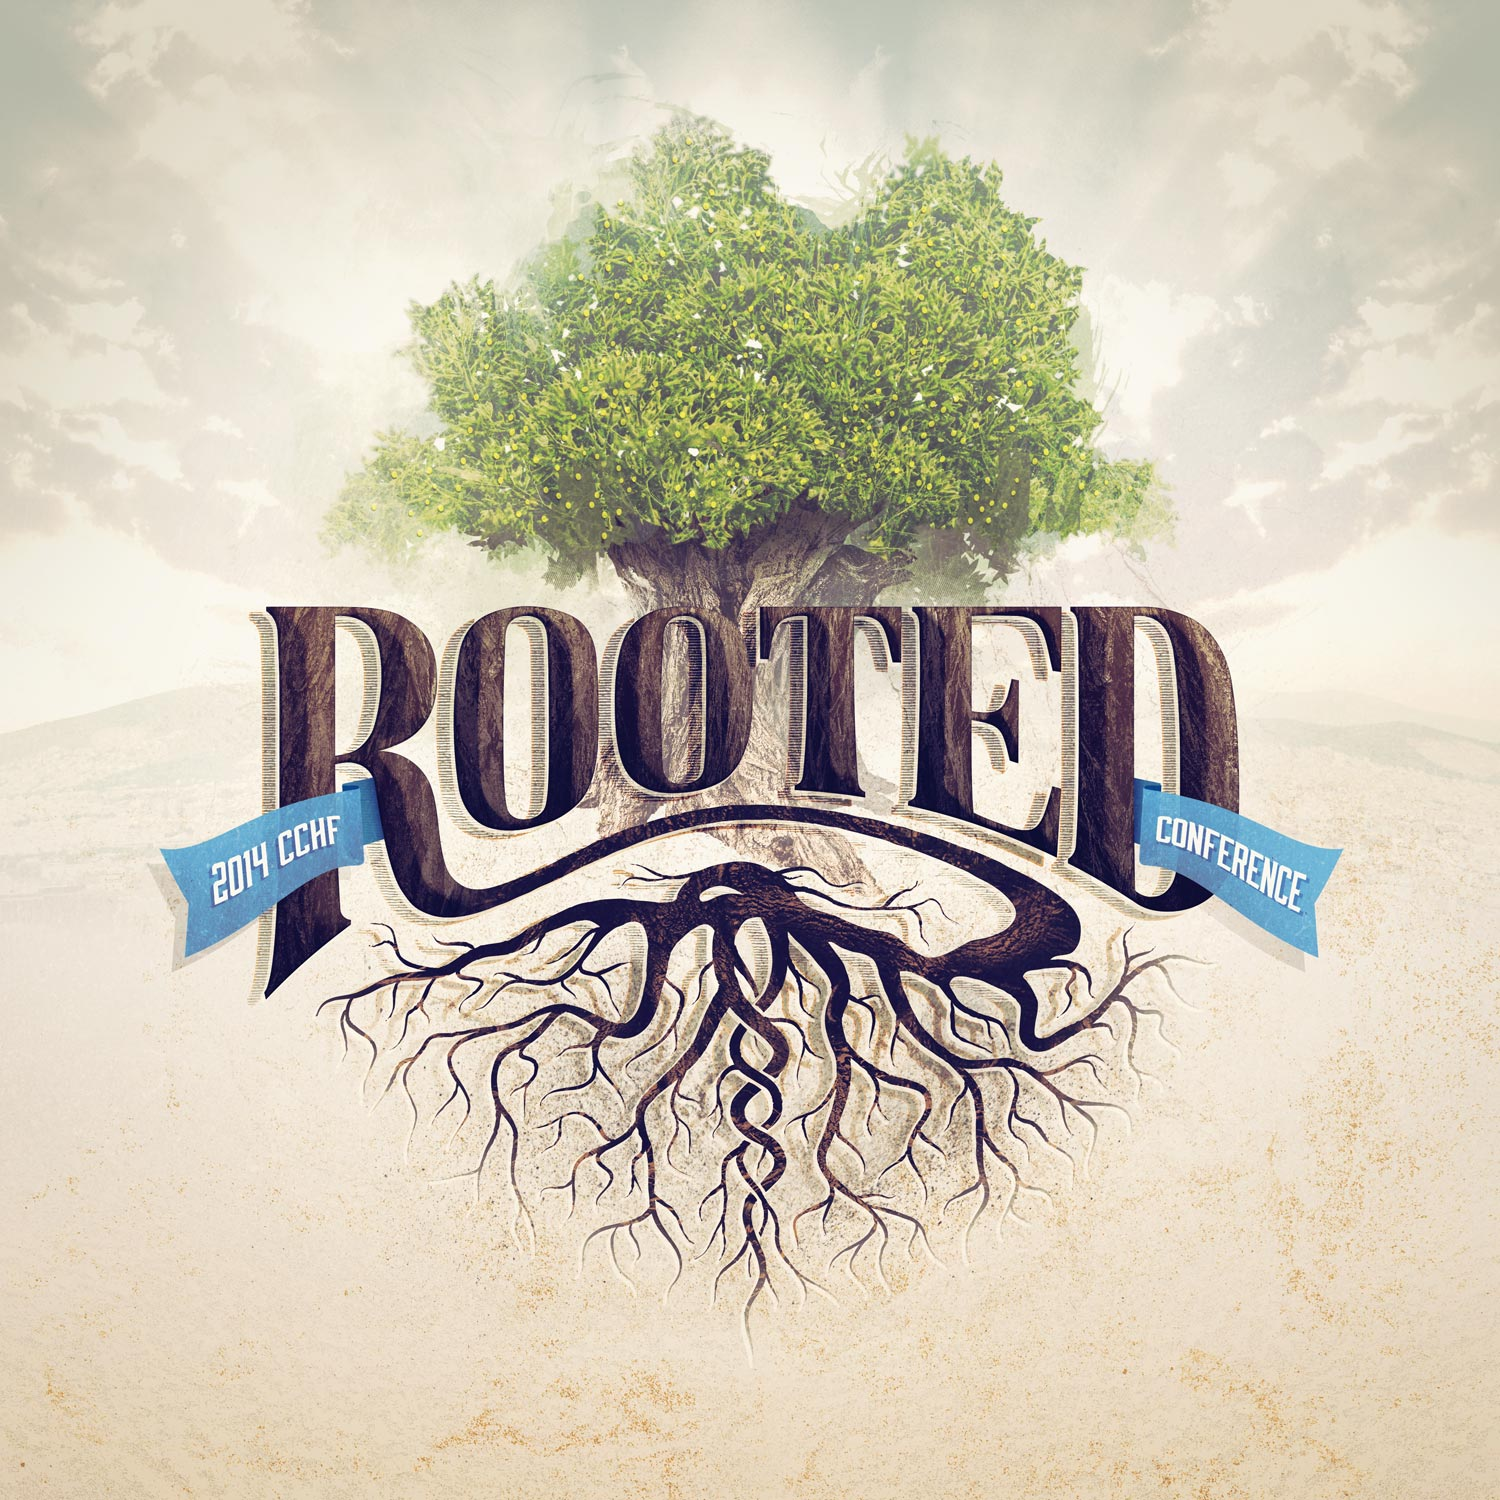 Rooted conference graphic. Image copyright Jeff Miller, HellothisisJeff Design LLC